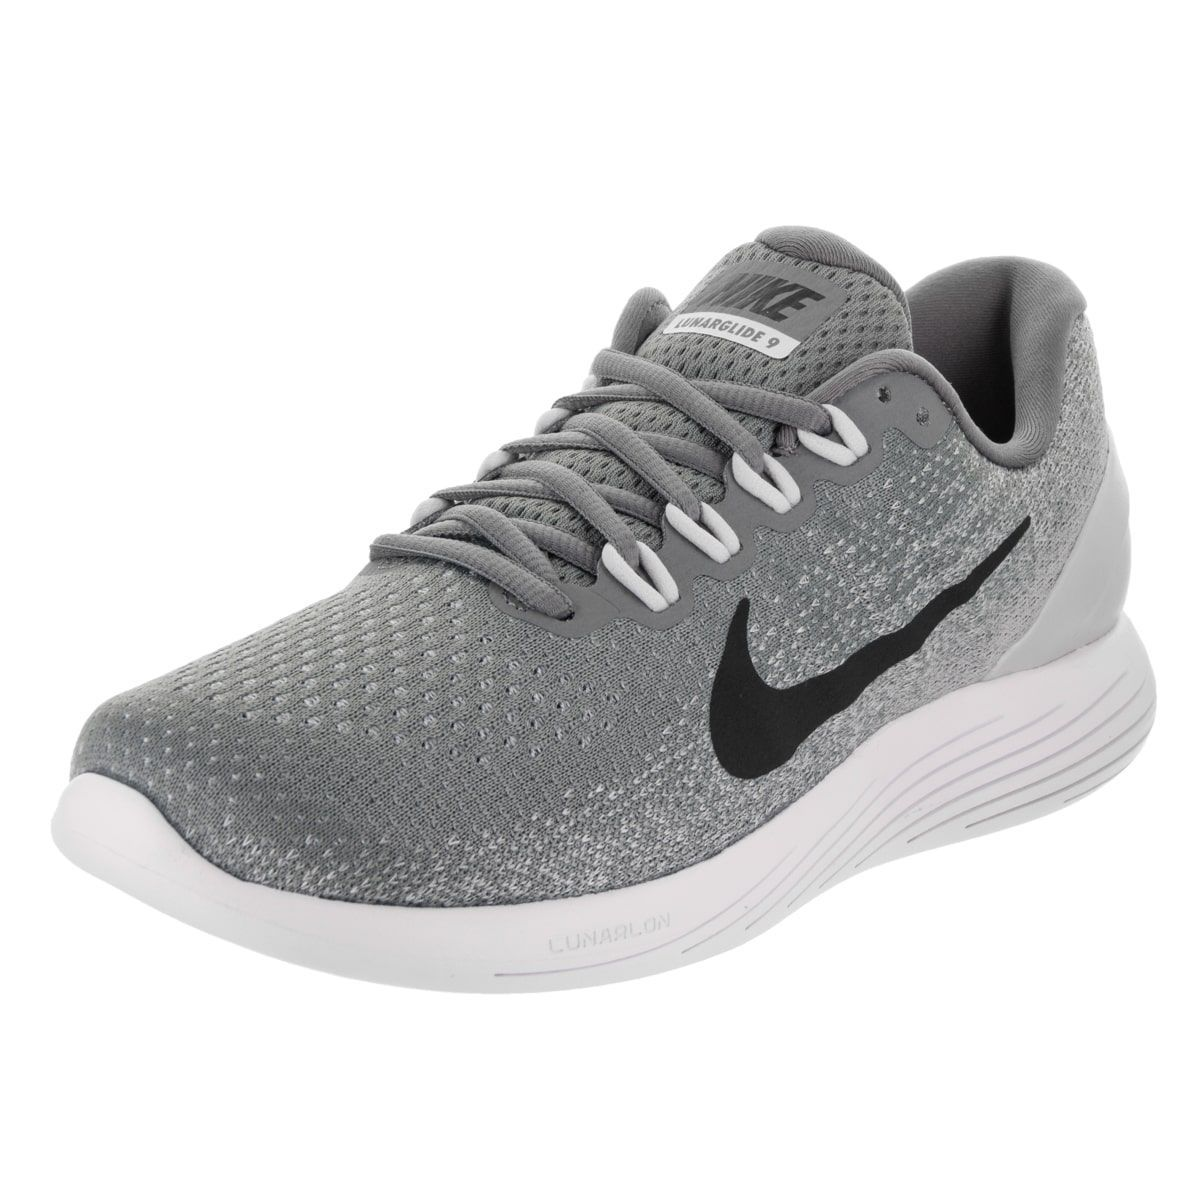 outlet store 3f2a0 f86e0 Nike Men's Lunarglide 9 Running Shoe | fitness | Nike ...